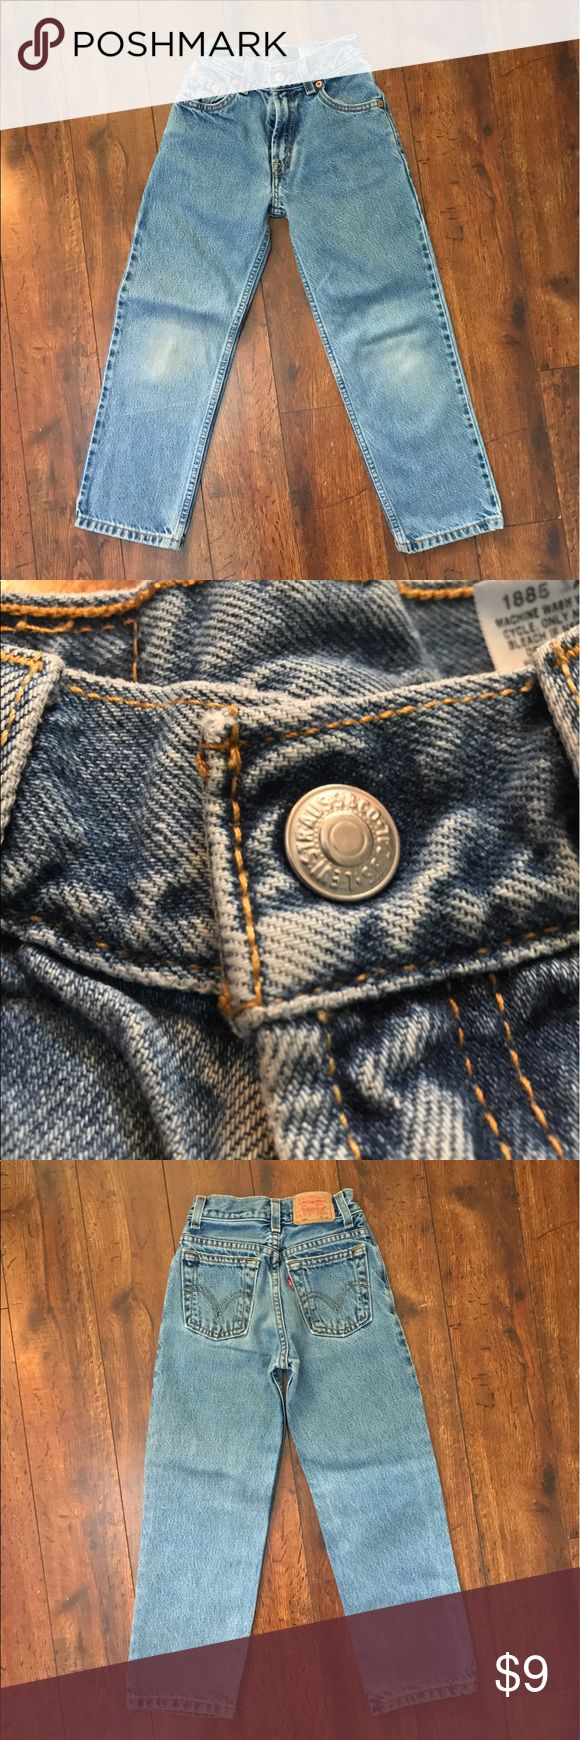 Levi's 550 Boys Jeans Levi's 550 Boys Jeans in great condition Levi's Bottoms Jeans